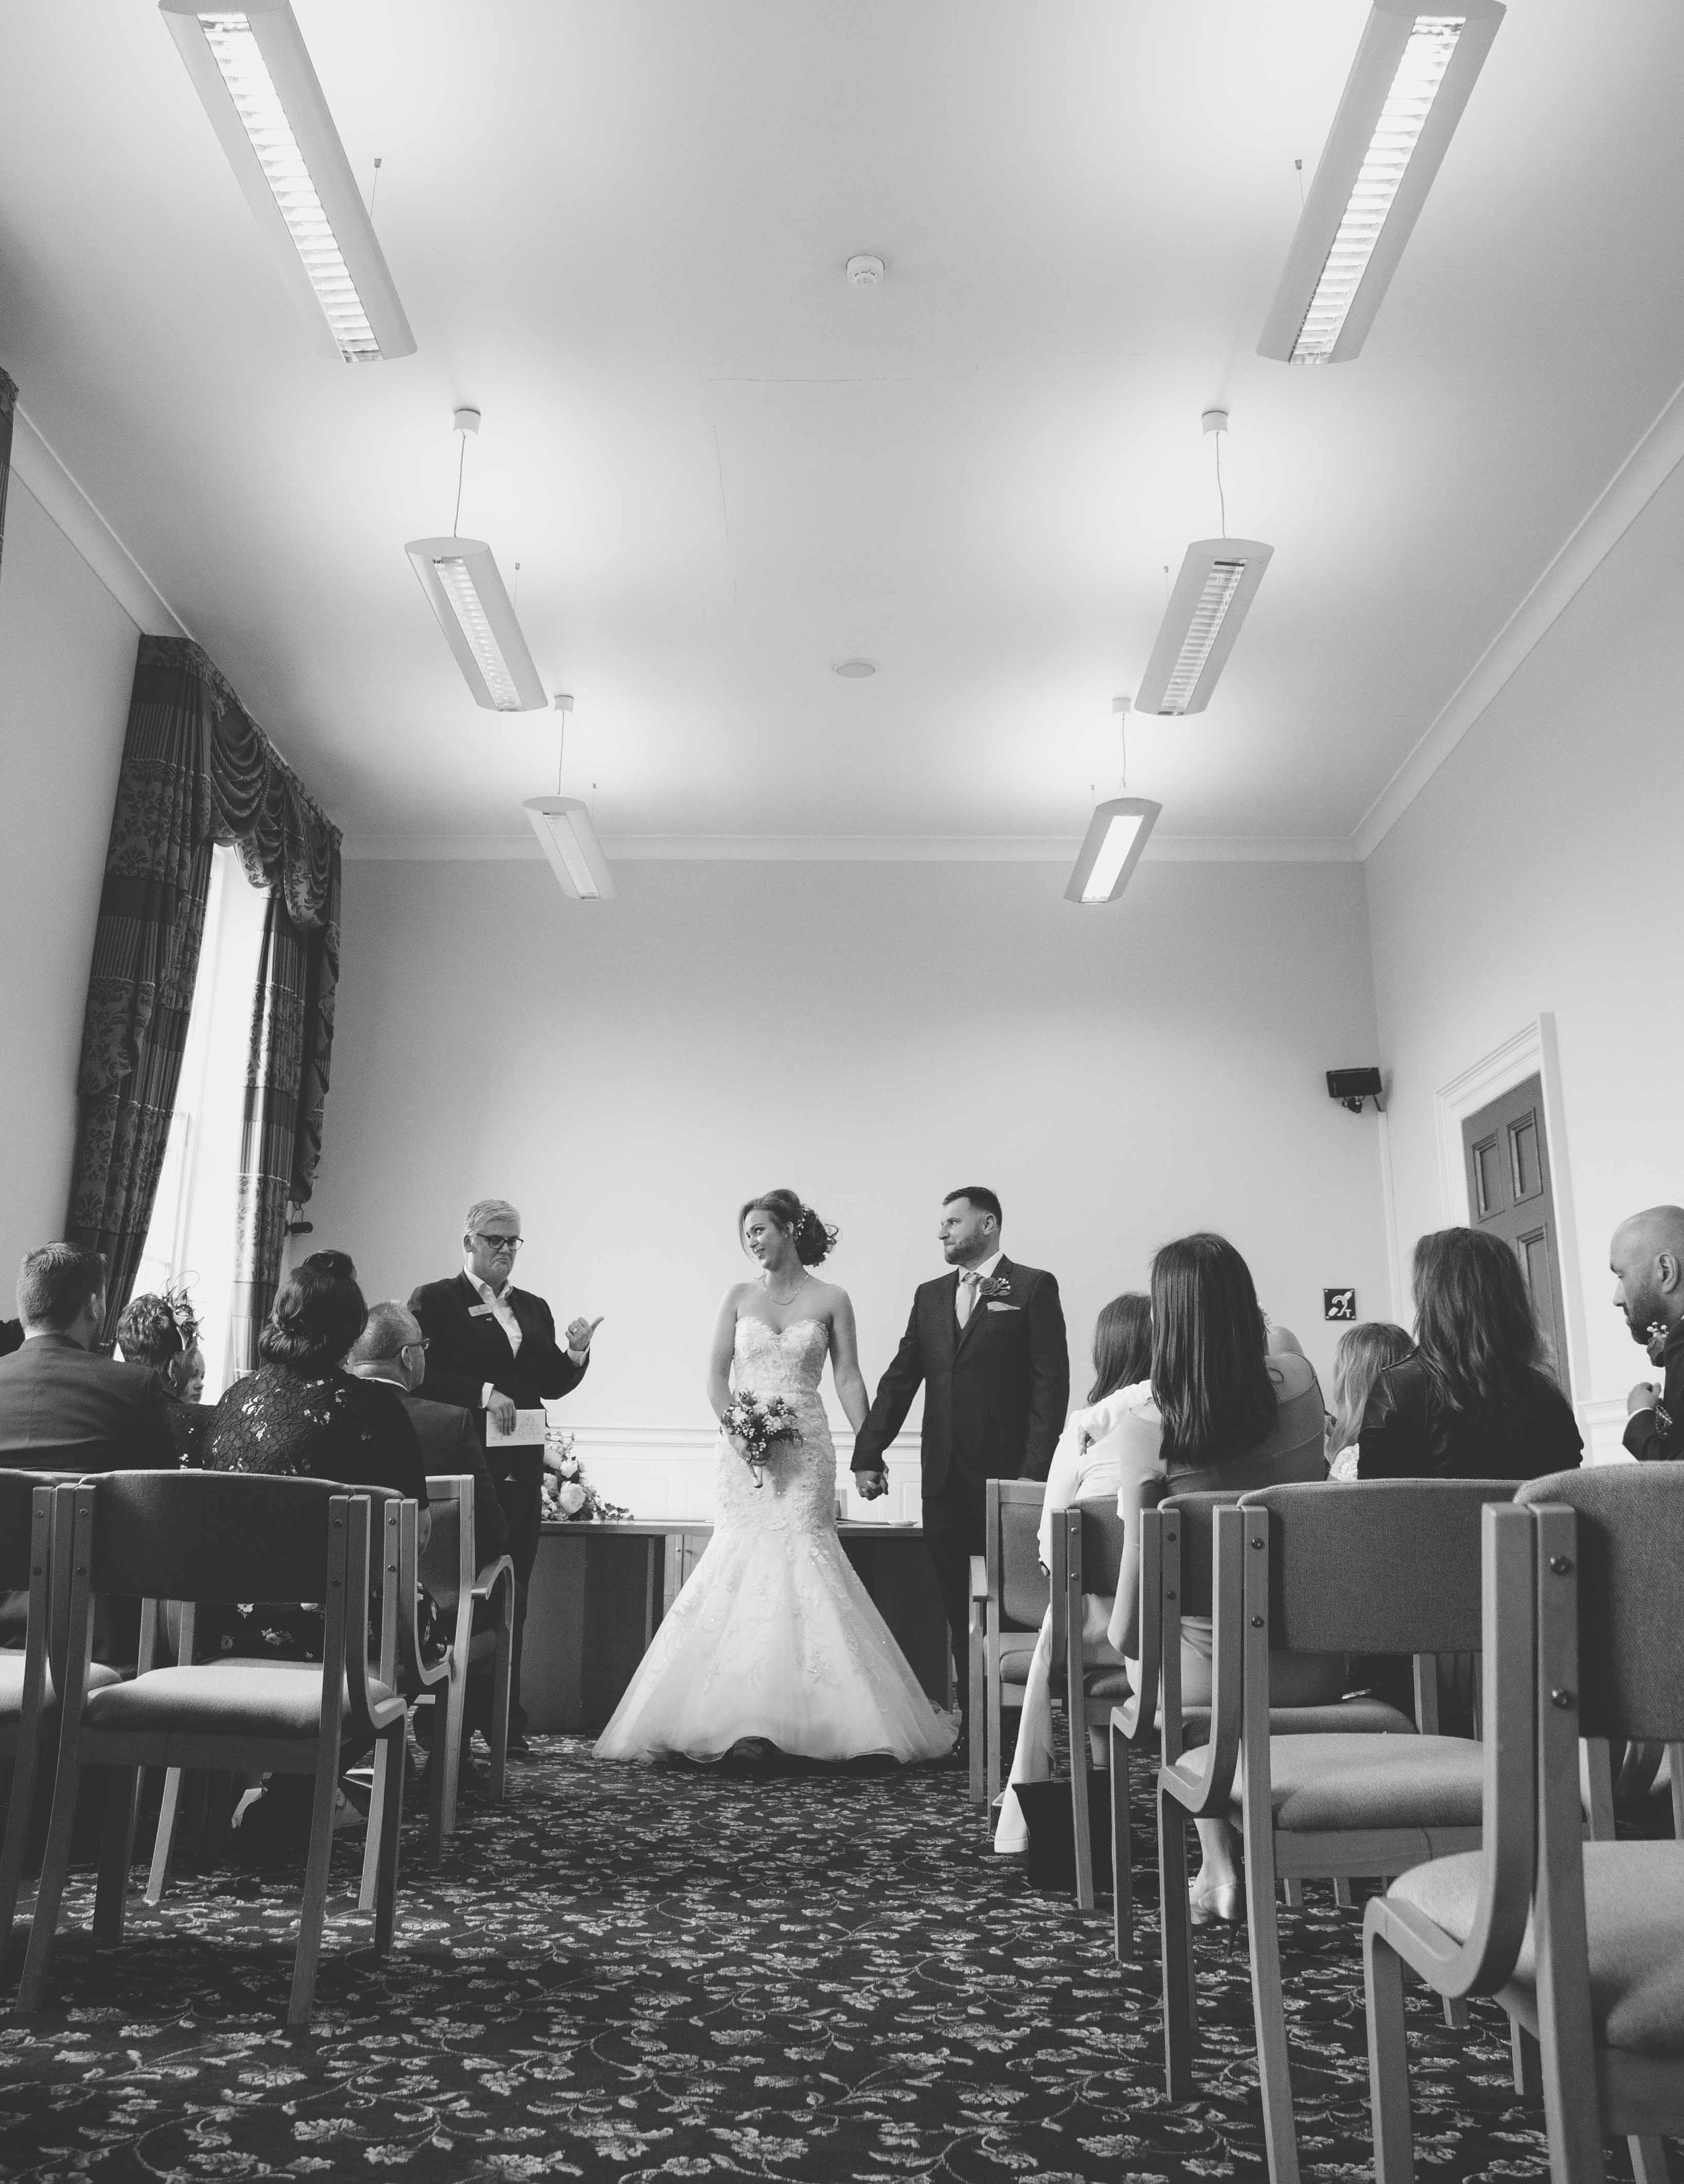 wedding-photos-at-st-georges-hall-liverpool (44 of 122).jpg